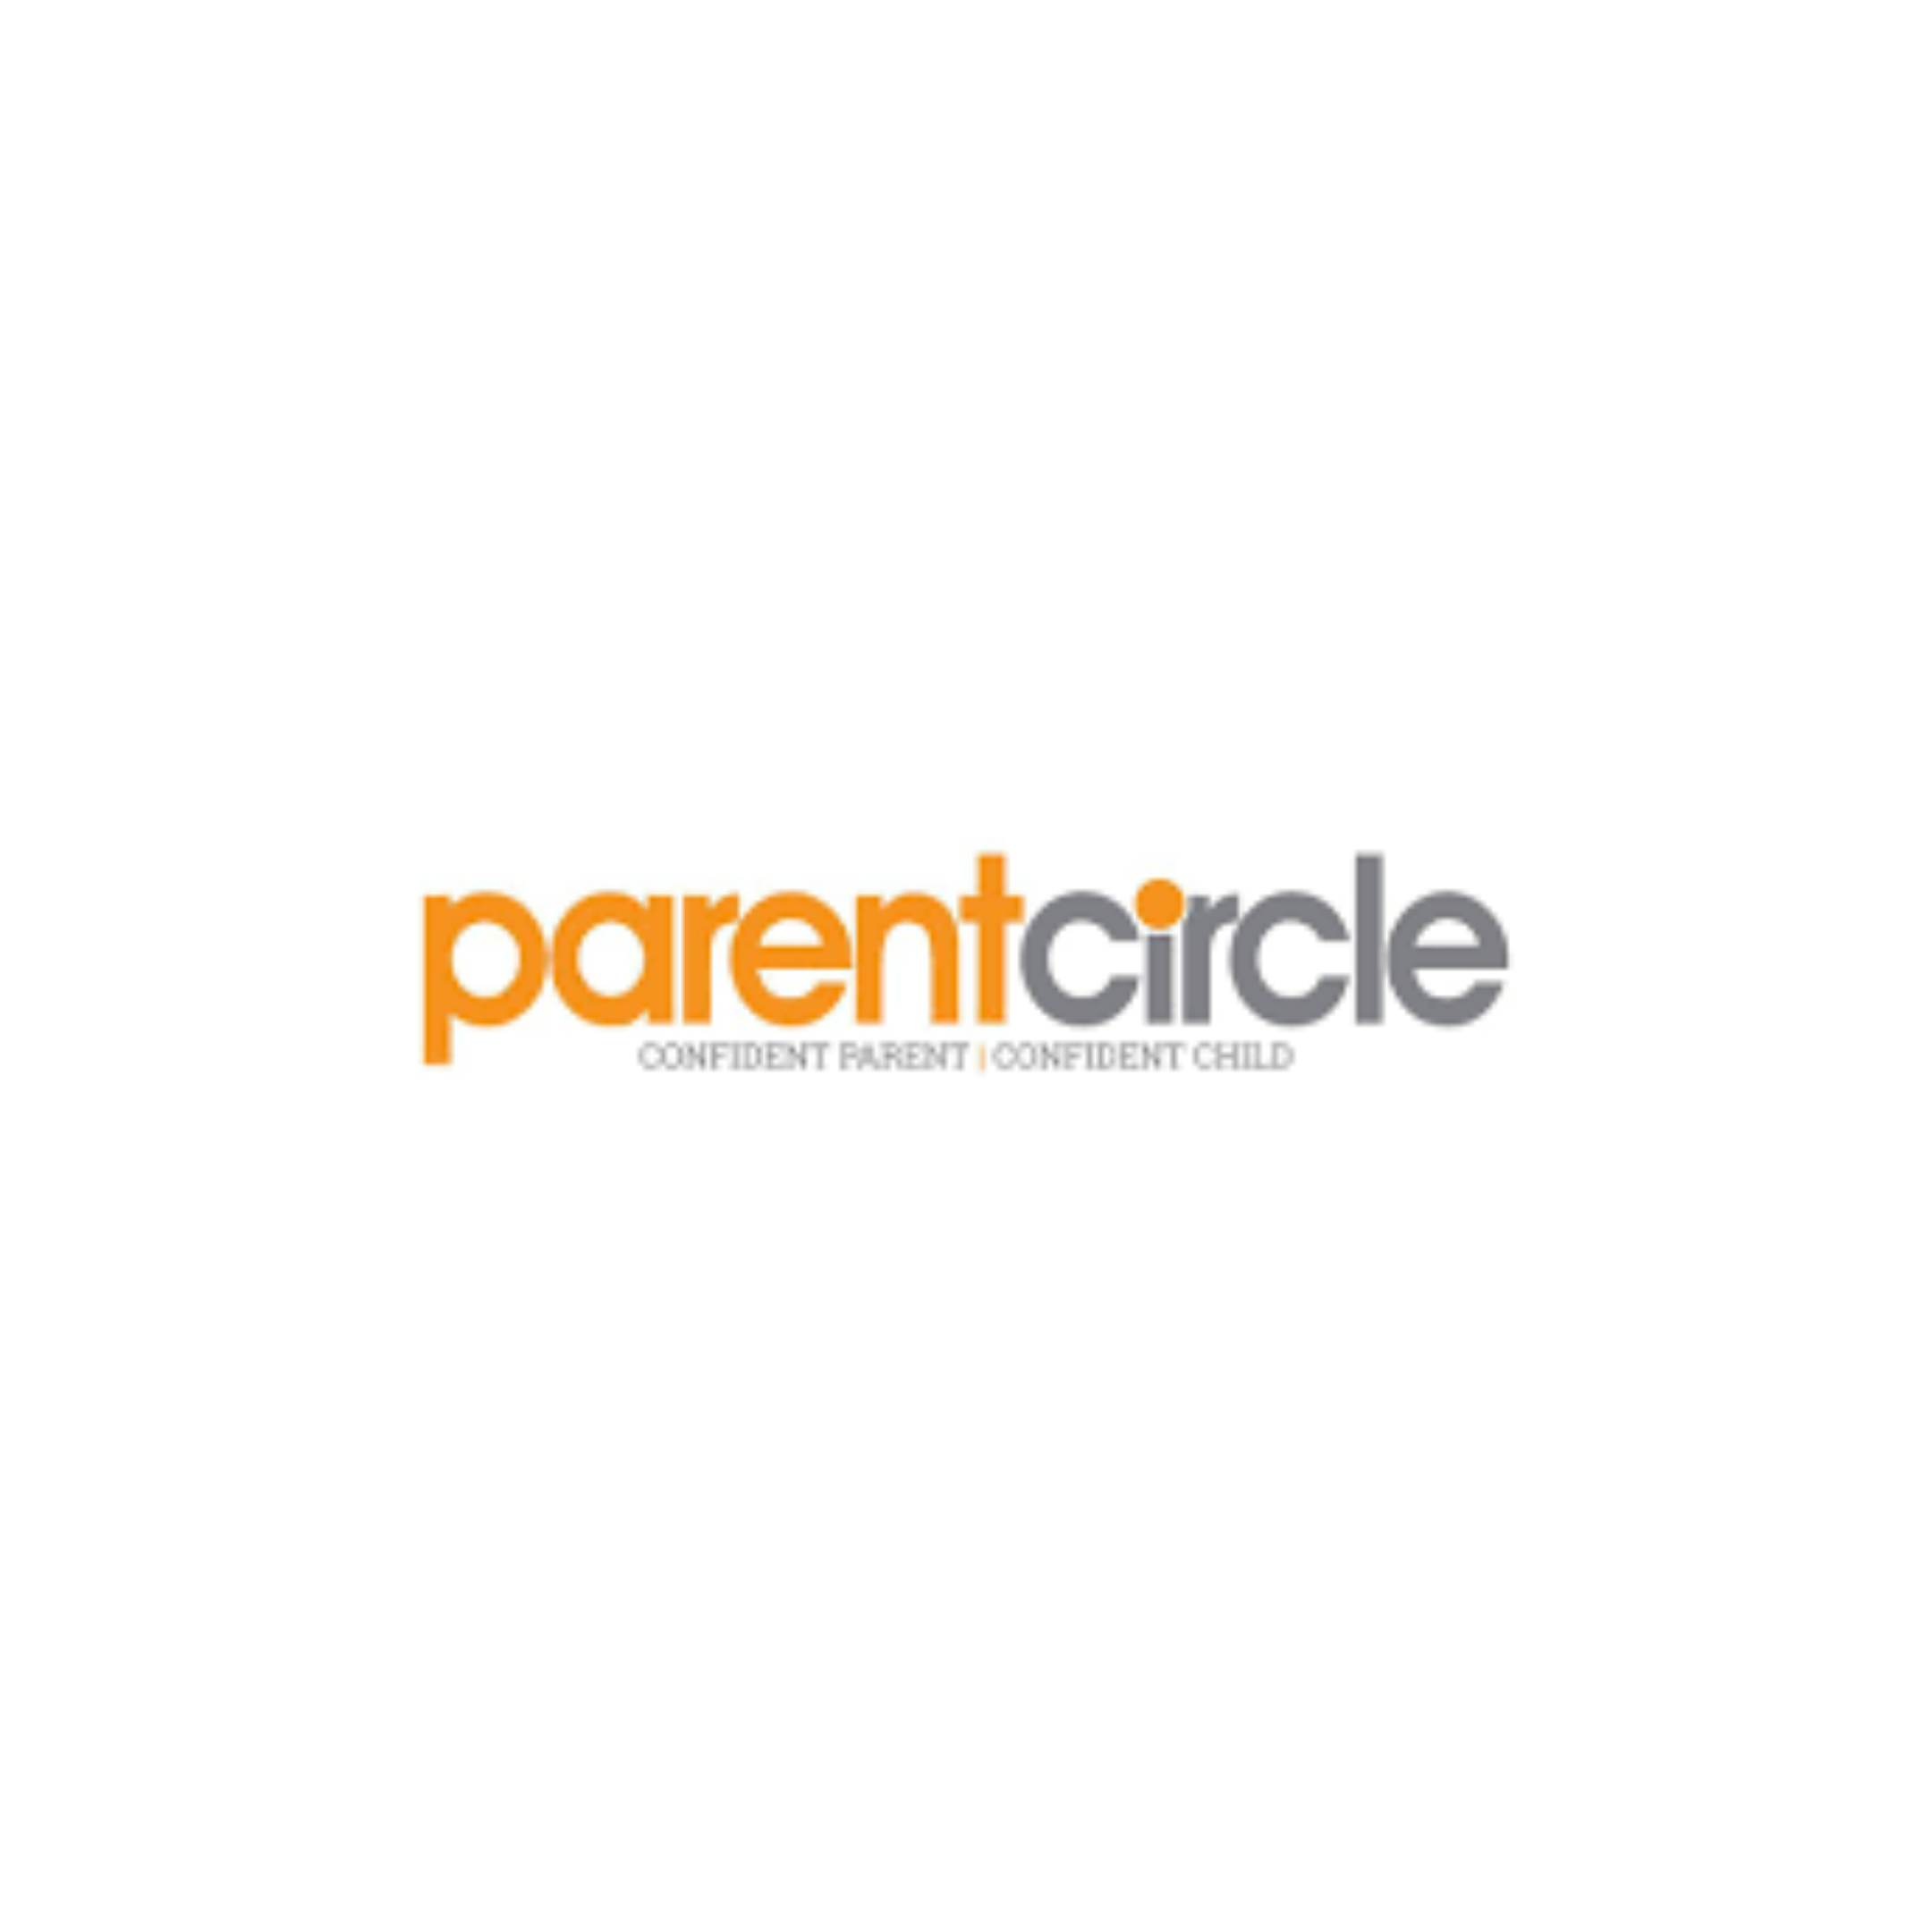 parentcircle